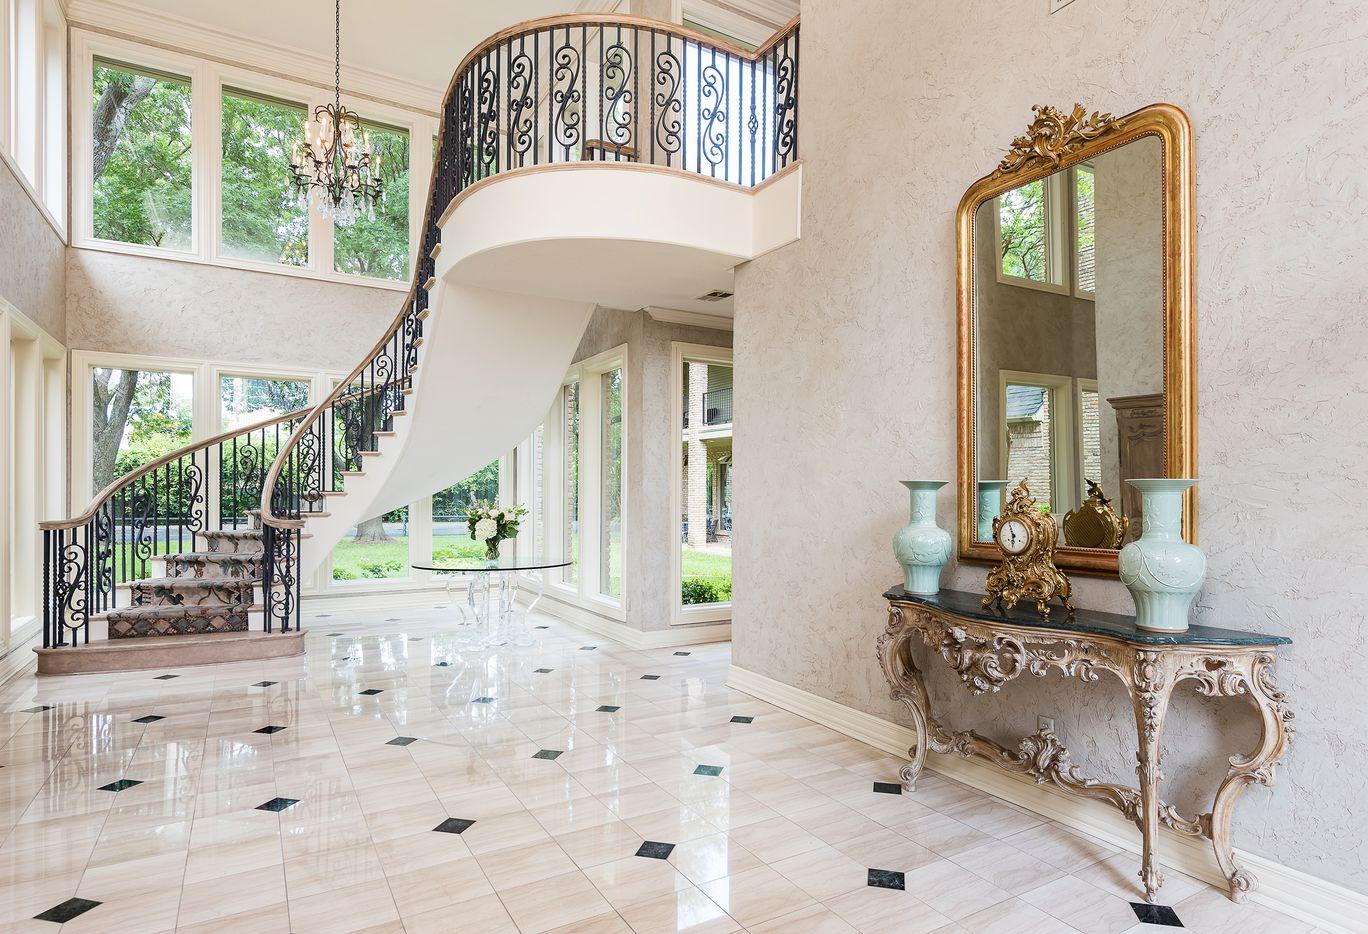 Take a look inside the house at 9441 Hollow Way Road in Dallas, TX.